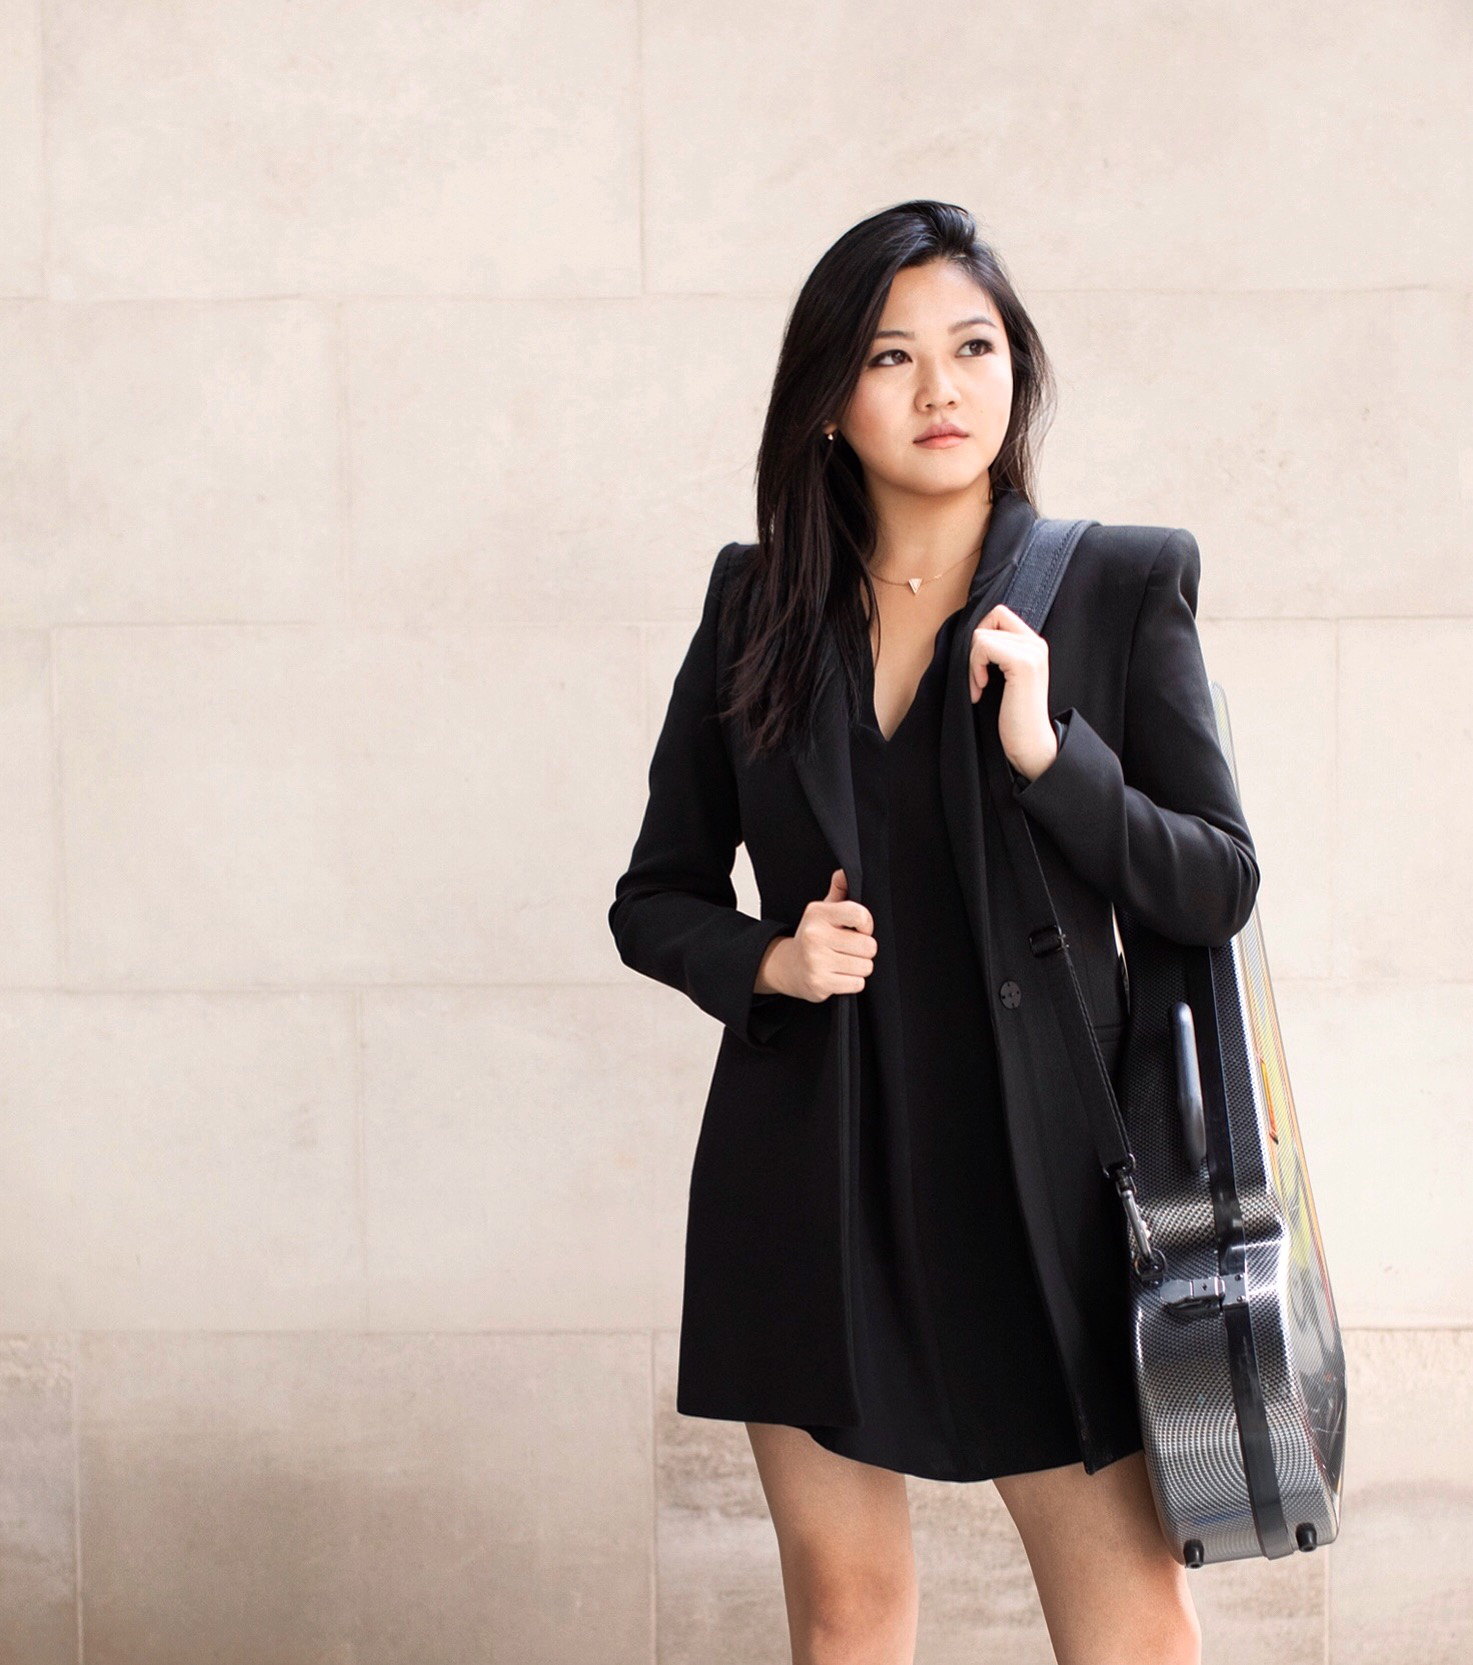 - Australian violinist Emily Sun is rapidly gaining international recognition as a rising soloist. She was recently named the 2018 ABC Australian Young Performer of the Year and was awarded the Gold Medal and Commonwealth Musician of the Year at the 2016 Royal Over-Seas League Music Competition UK - the first violinist to win the award since 1981.In the next season, Emily will return to perform with the Sydney Symphony Orchestra, Melbourne Symphony Orchestra, Orchestre de Royal Wallonie as well as a debut with the Adelaide Symphony Orchestra. Emily will perform in Sydney's City Recital Hall, Melbourne Recital Centre, Seoul Arts Centre, Flagey Brussels and appear at festivals including the Edinburgh Fringe Festival, Crans Montana Classics Switzerland and Lichfield Festival UK.Recent highlights have included an acclaimed China orchestral debut with the Qingdao Symphony Orchestra under the baton of Tan Dun, debuts at Wigmore Hall, Bridgewater Hall and Moscow Tchaikovsky Great Hall, and the invitation to perform Bach's Double Violin Concerto with Maxim Vengerov at Buckingham Palace in the presence of HRH Prince of Wales.Emily is the ABC Artist-in-Residence and BBC Introducing Artist and performances have also been broadcast on Classic FM (UK), Kol Hamusica (Israel), WXQR (USA). Emily's debut album will be released on the ABC Classics label in 2020.Emily is a prizewinner in many international competitions such as the Yampolsky International Violin Competition (Russia), Brahms International Violin Competition (Austria), Lipizer International Violin Competition (Italy). She was selected as a Young Concert Artist for the Tillett Trust and Making Music UK and is a City Music Foundation Artist. She was awarded the Maisie Lewis Prize from the Worshipful Company of Musicians.An avid chamber musician, Emily has collaborated with musicians such as Maxim Vengerov, Gary Hoffman, Miguel da Silva, Danny Driver and is regularly invited to chamber music festivals across Europe and Aust